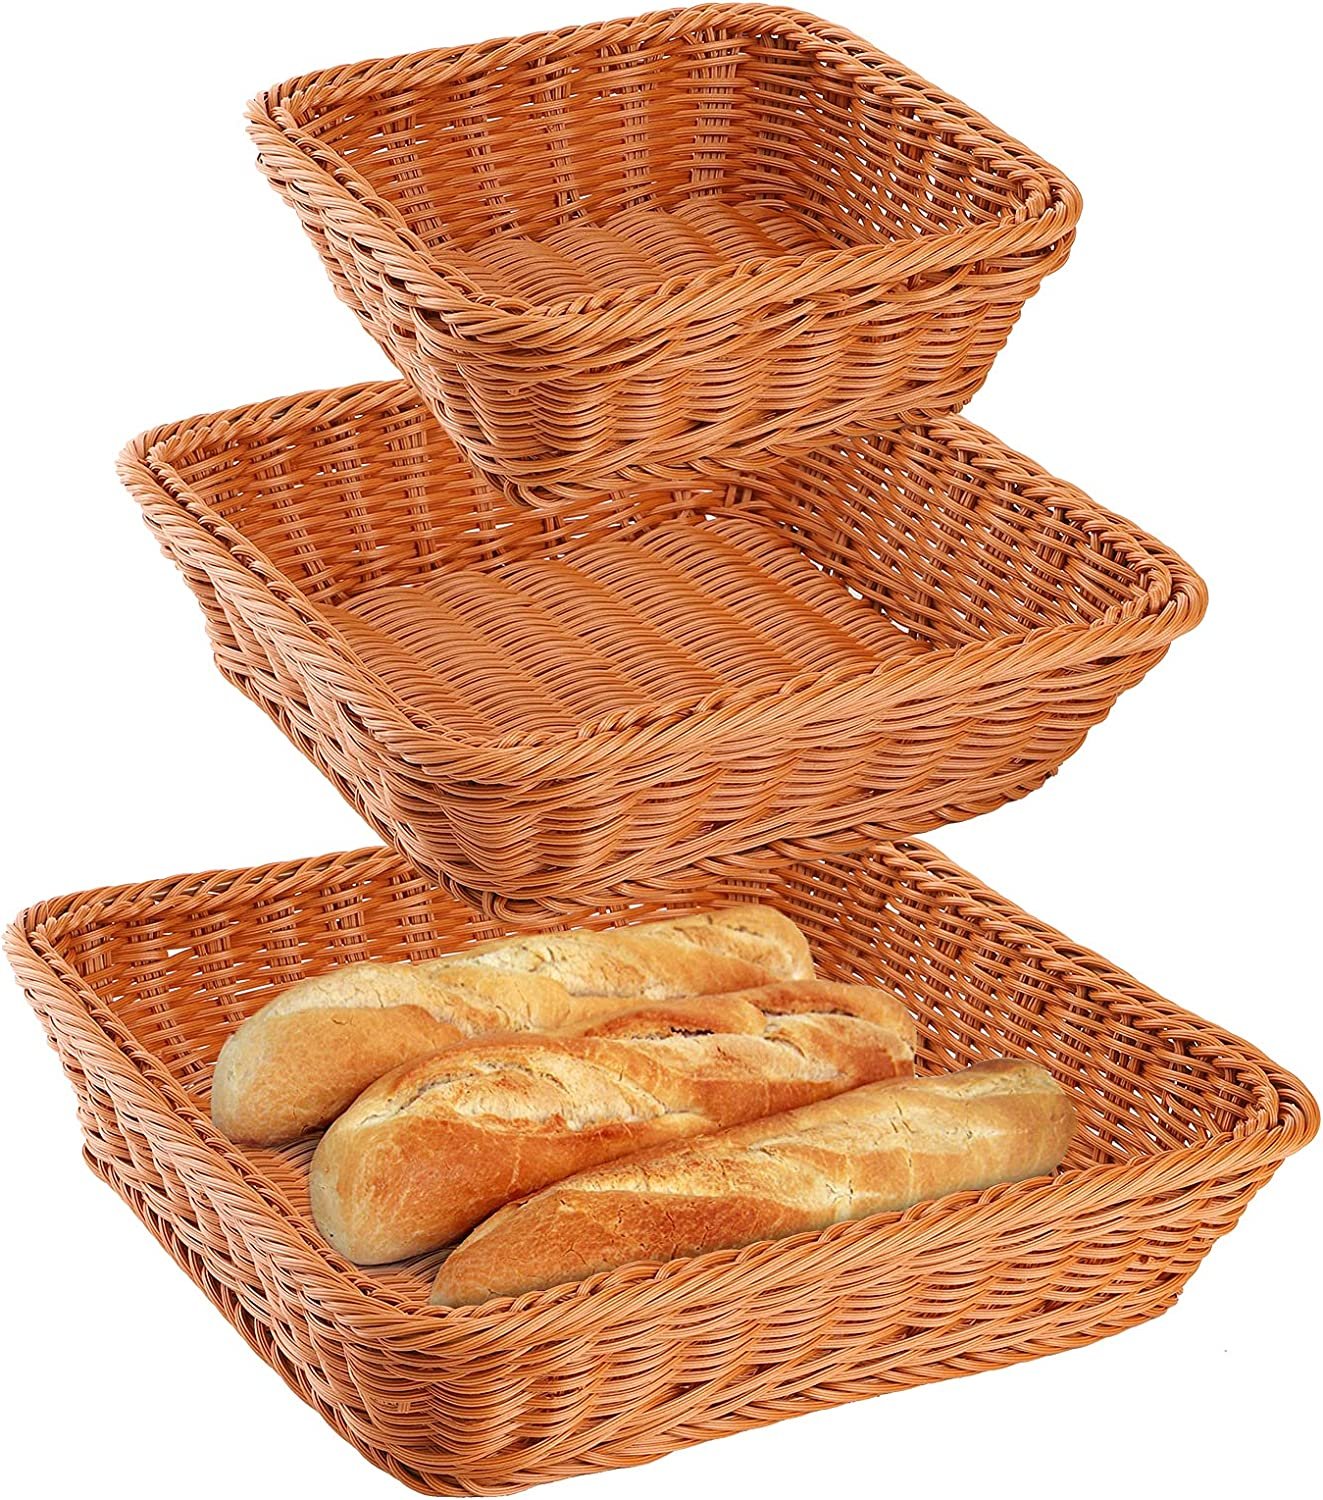 ZOOFOX Set of 3 Poly-Wicker Bread Basket, Tabletop Food Vegetables Serving Basket, Square Sundries Storage Tray for Restaurant